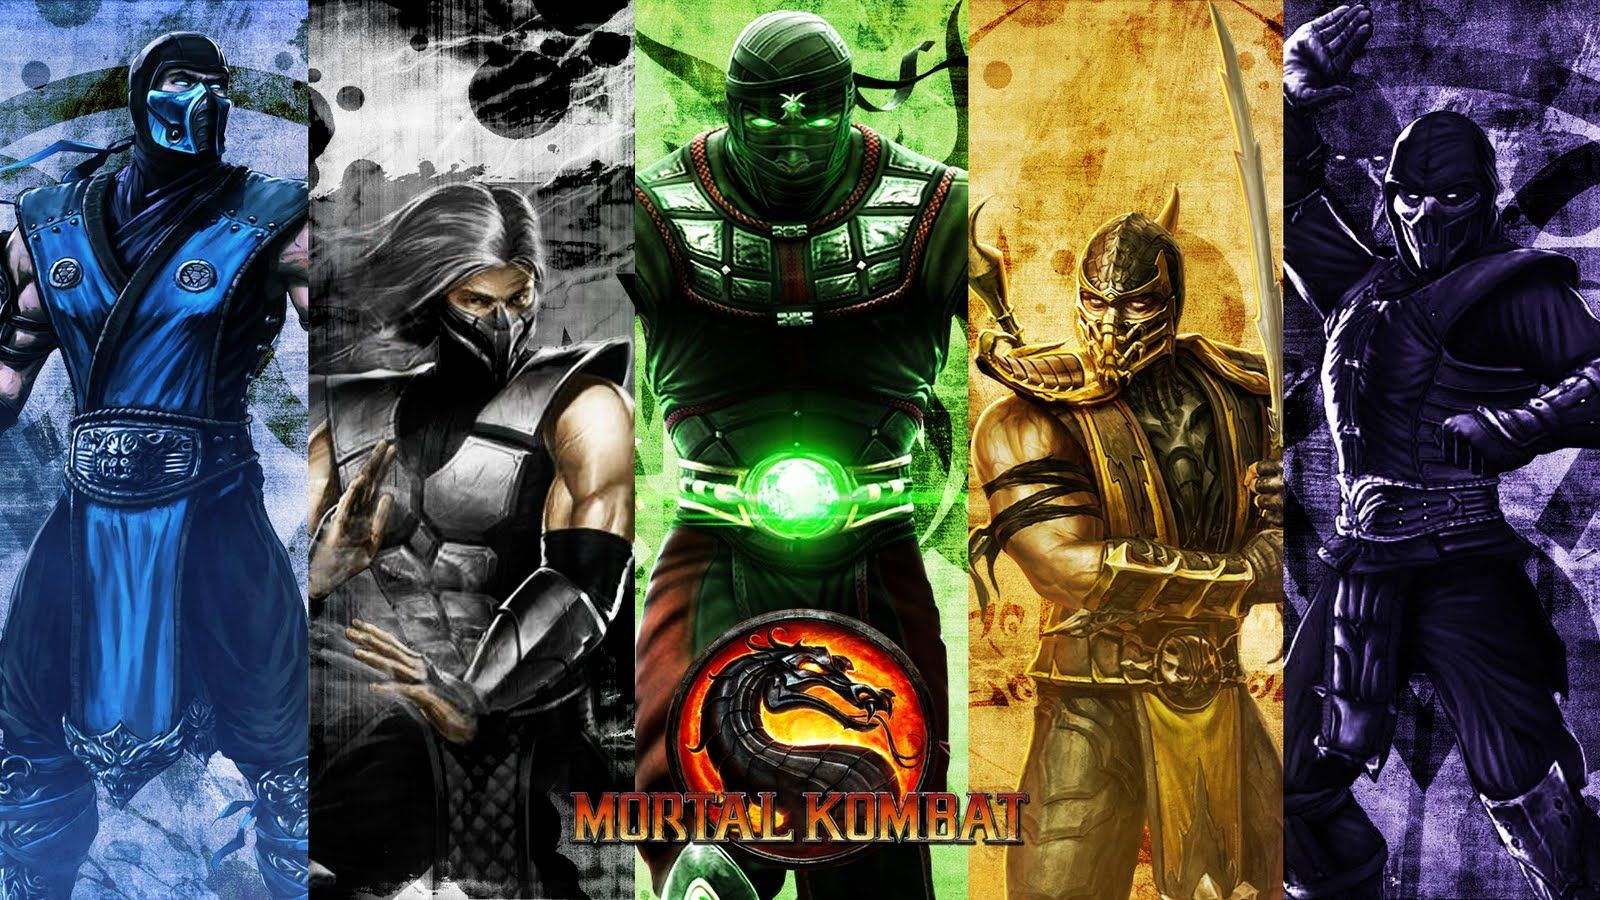 Mortal Kombat 9 Dlc Characters Free Download Ps3 - colqfest's diary